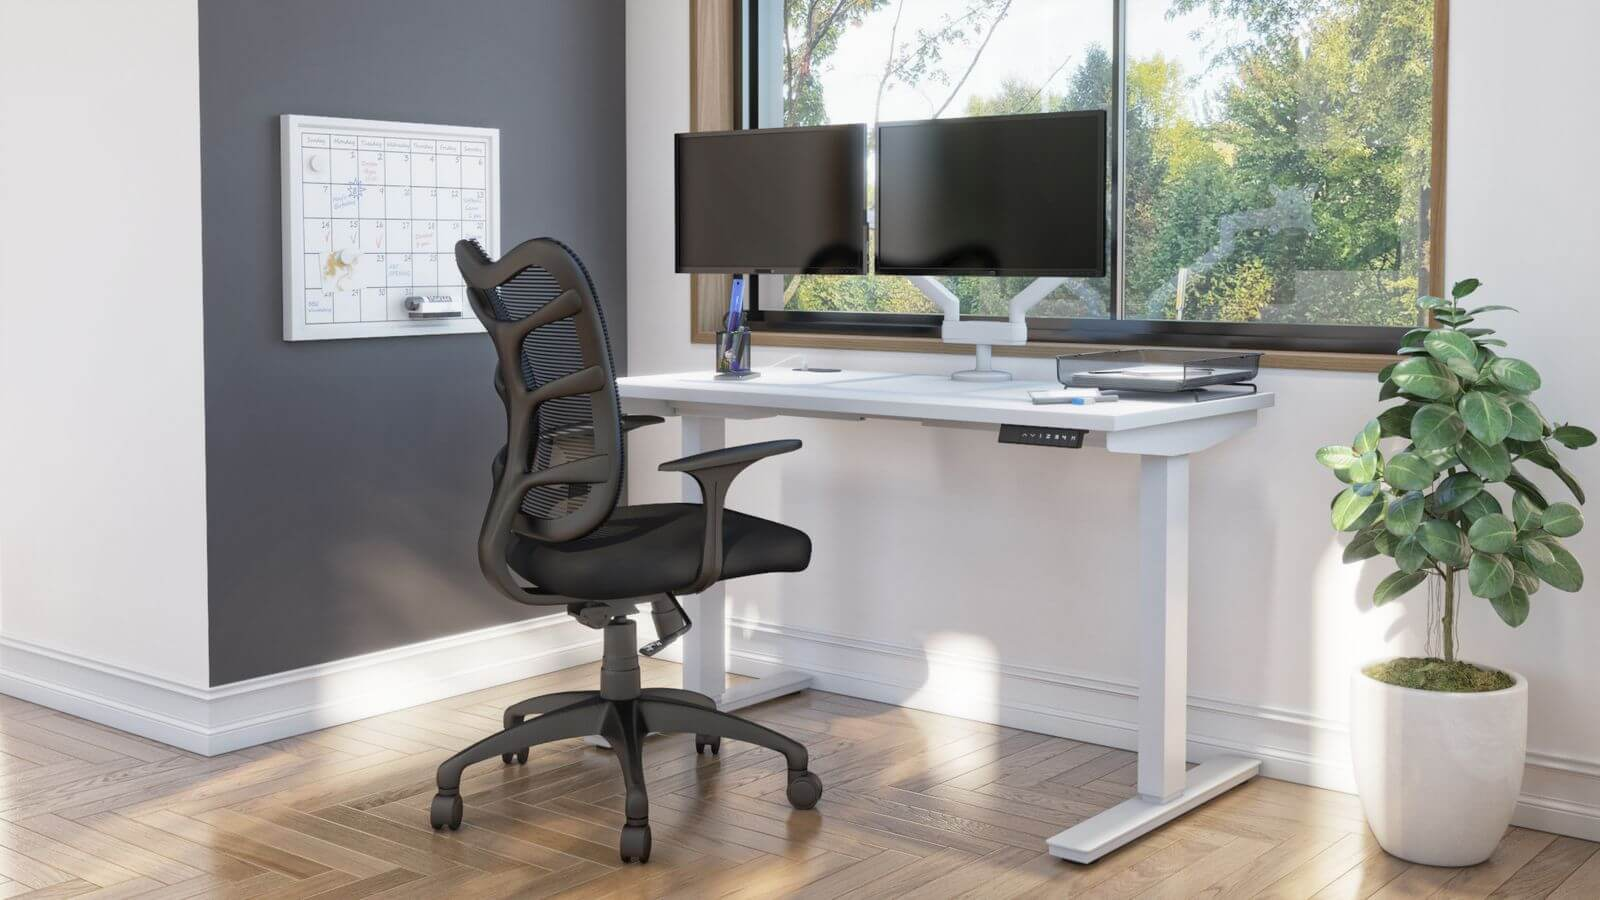 Bestar standing desk with monitor arms